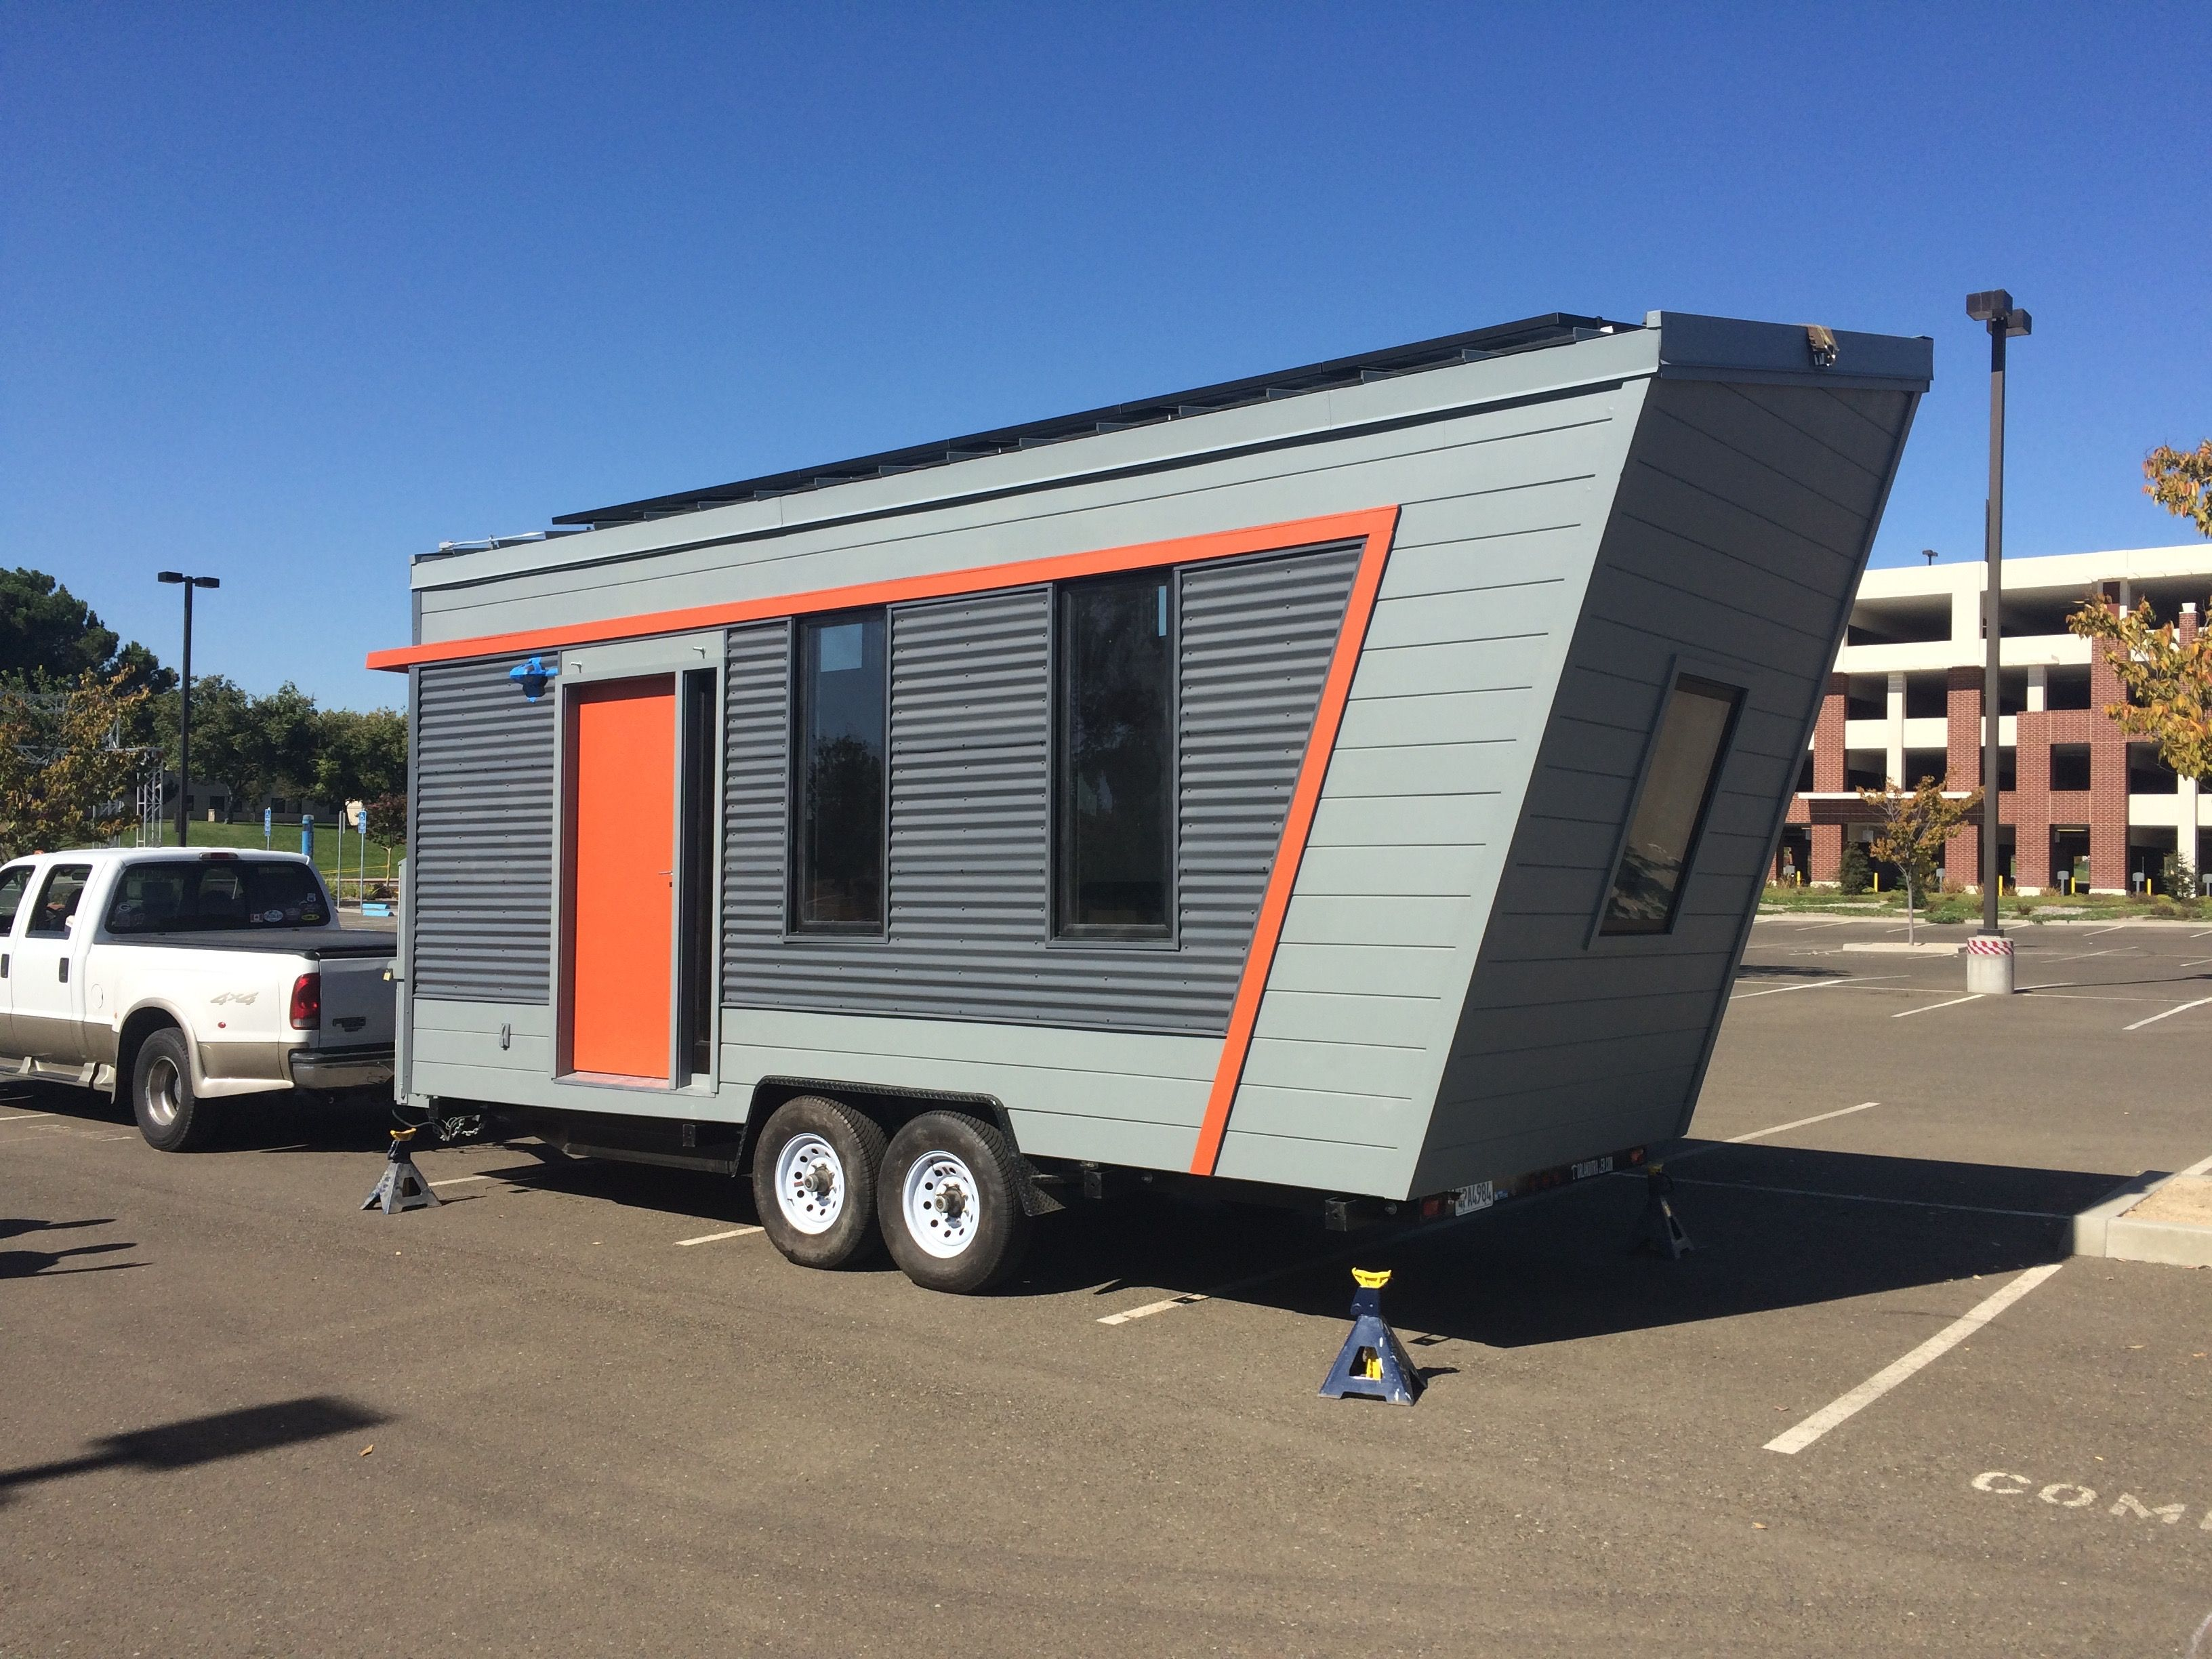 The Wedge Tiny House for Sale in Oakland, California